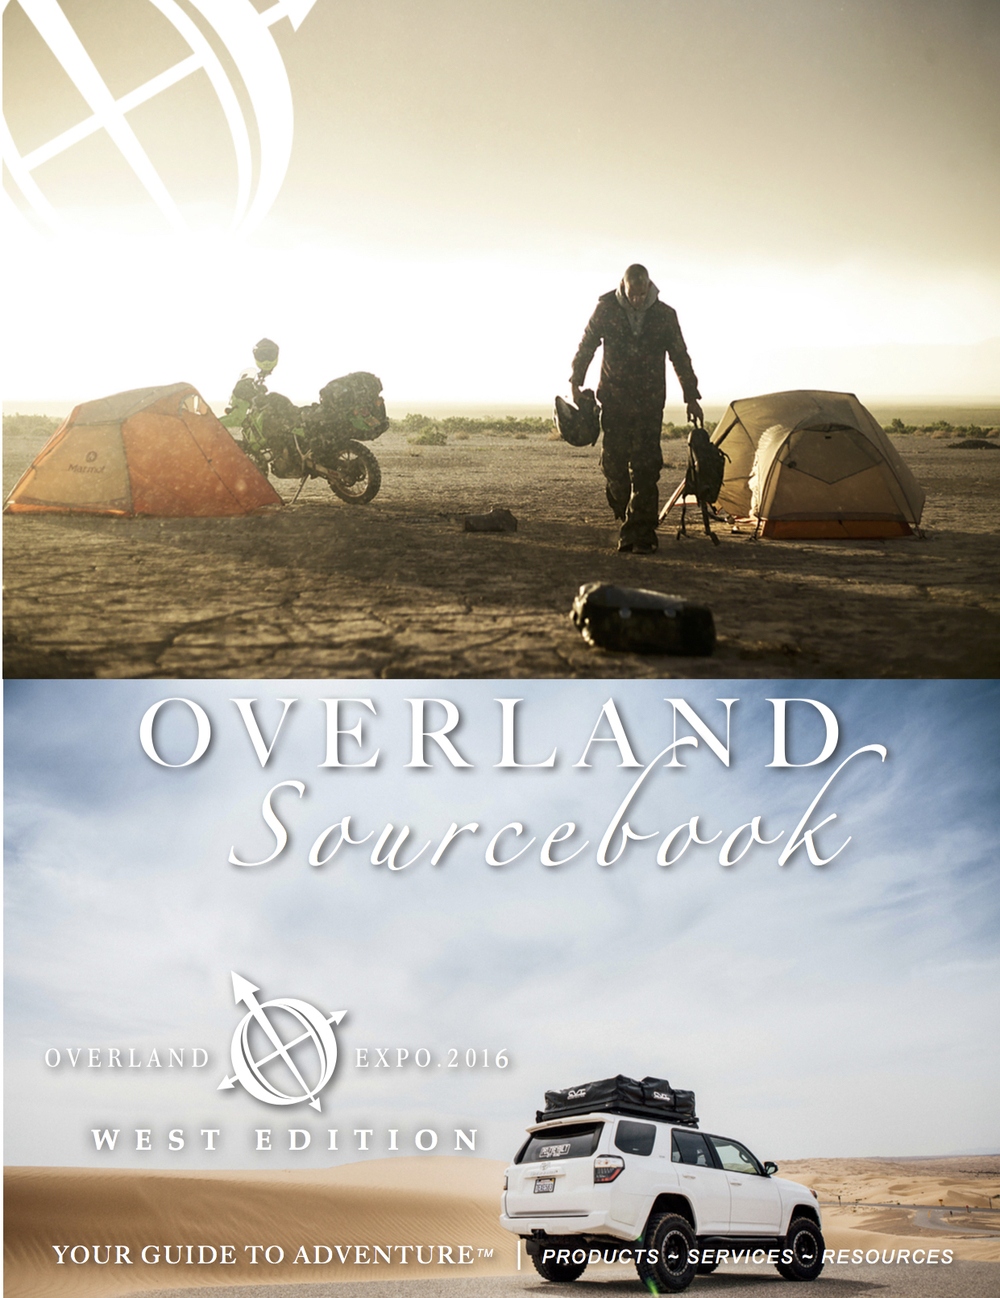 Download our 84-page Overland Sourcebook, 2016 WEST & 2015 EAST Editions